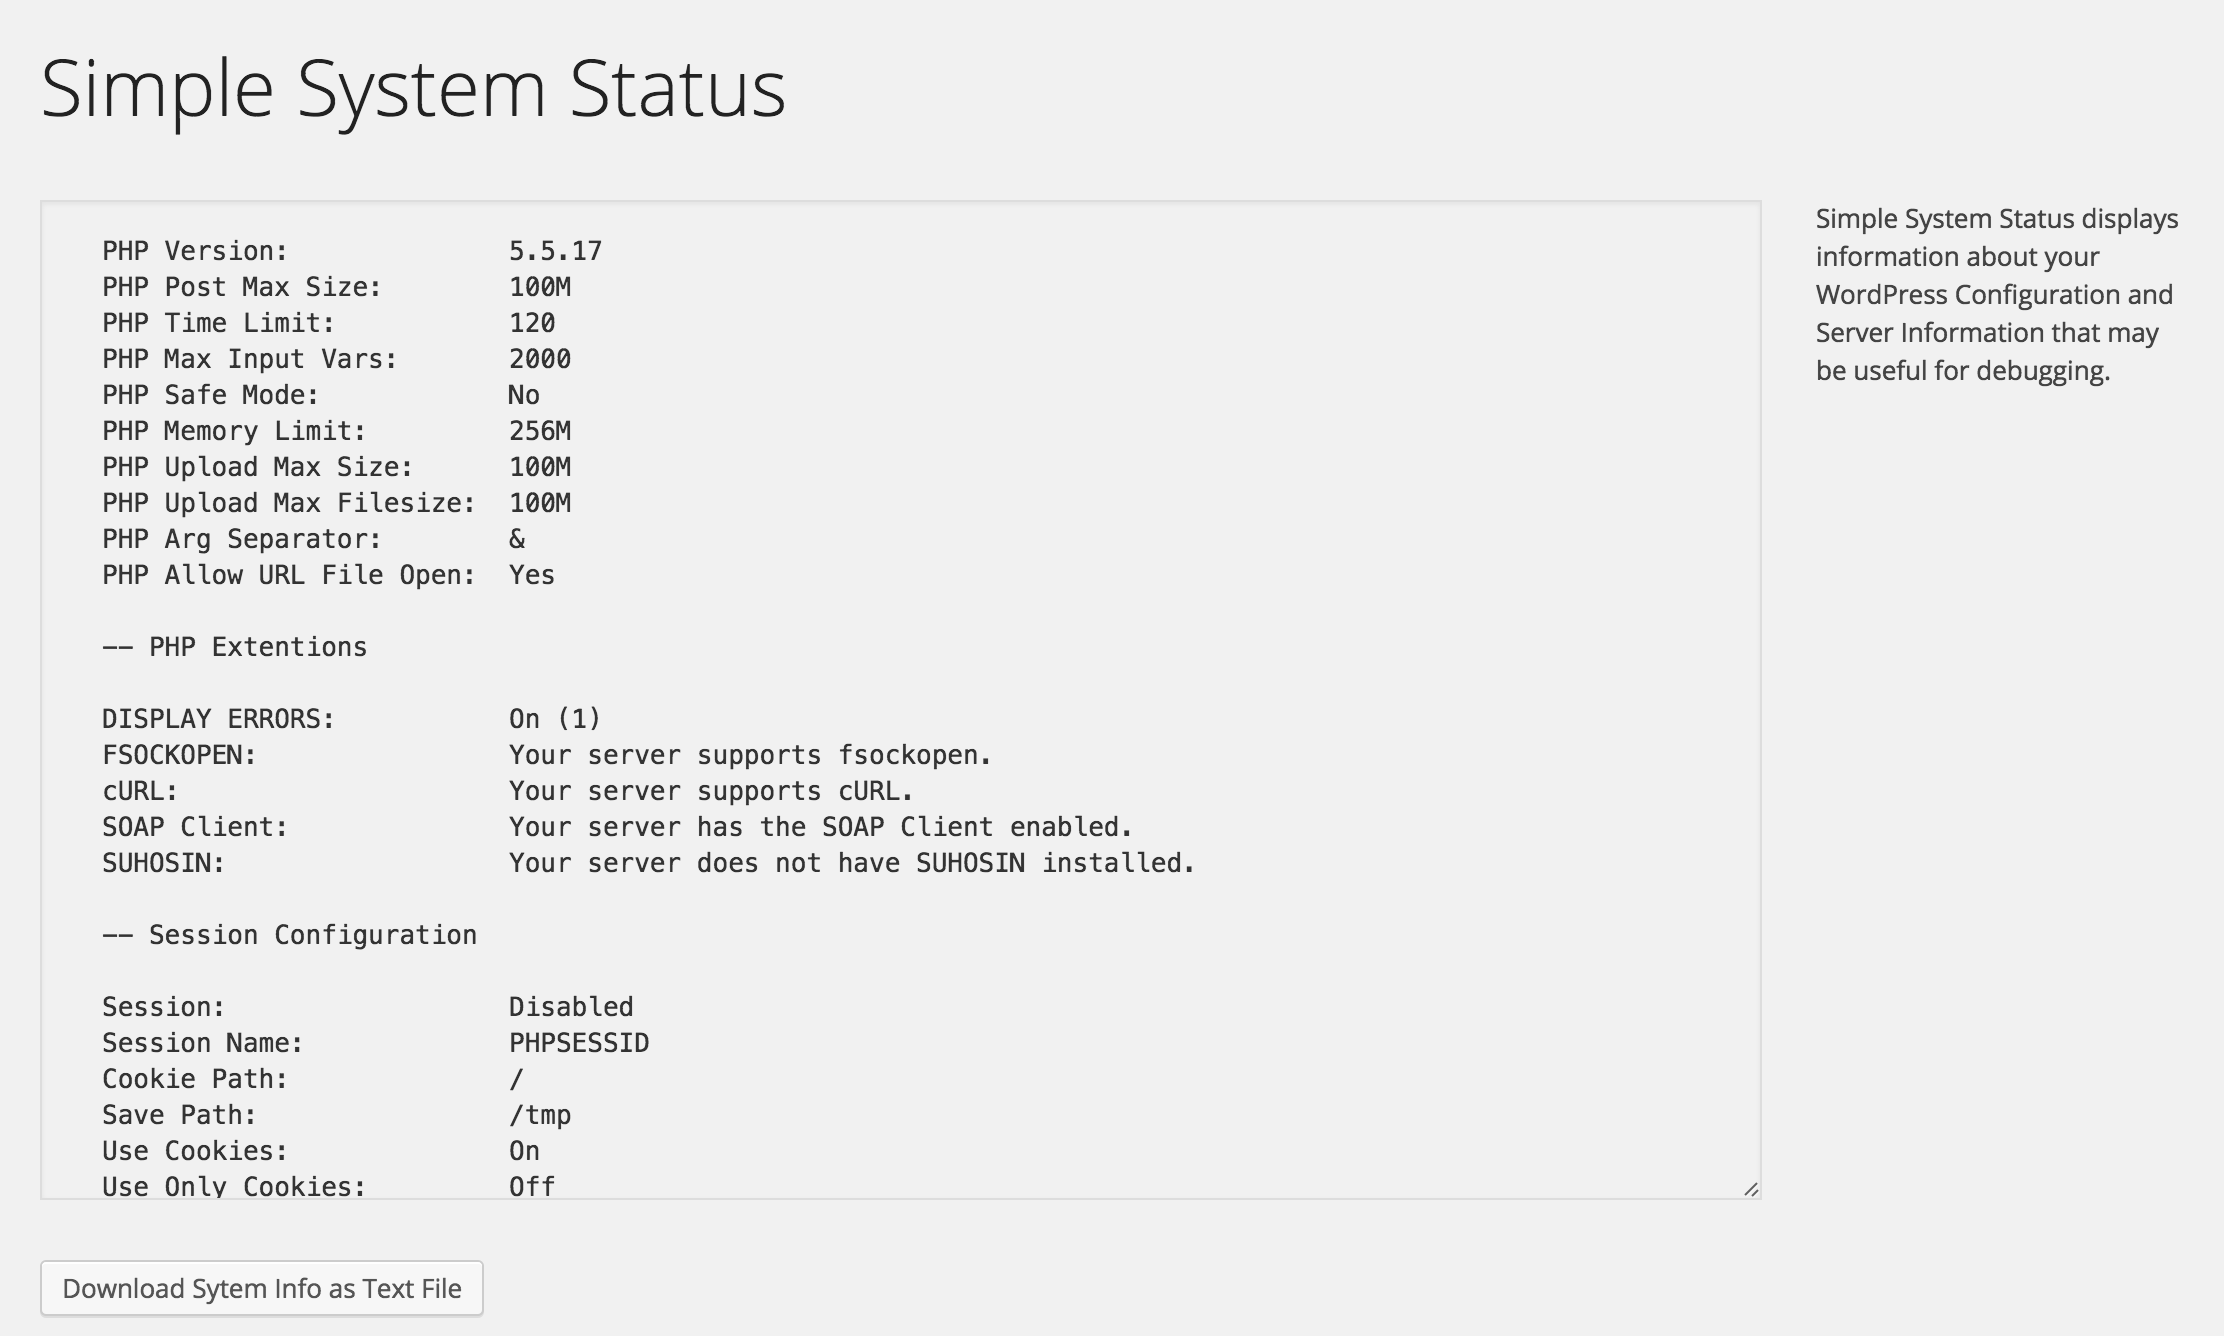 The Main Screen for viewing System Status, with download link (textfile)